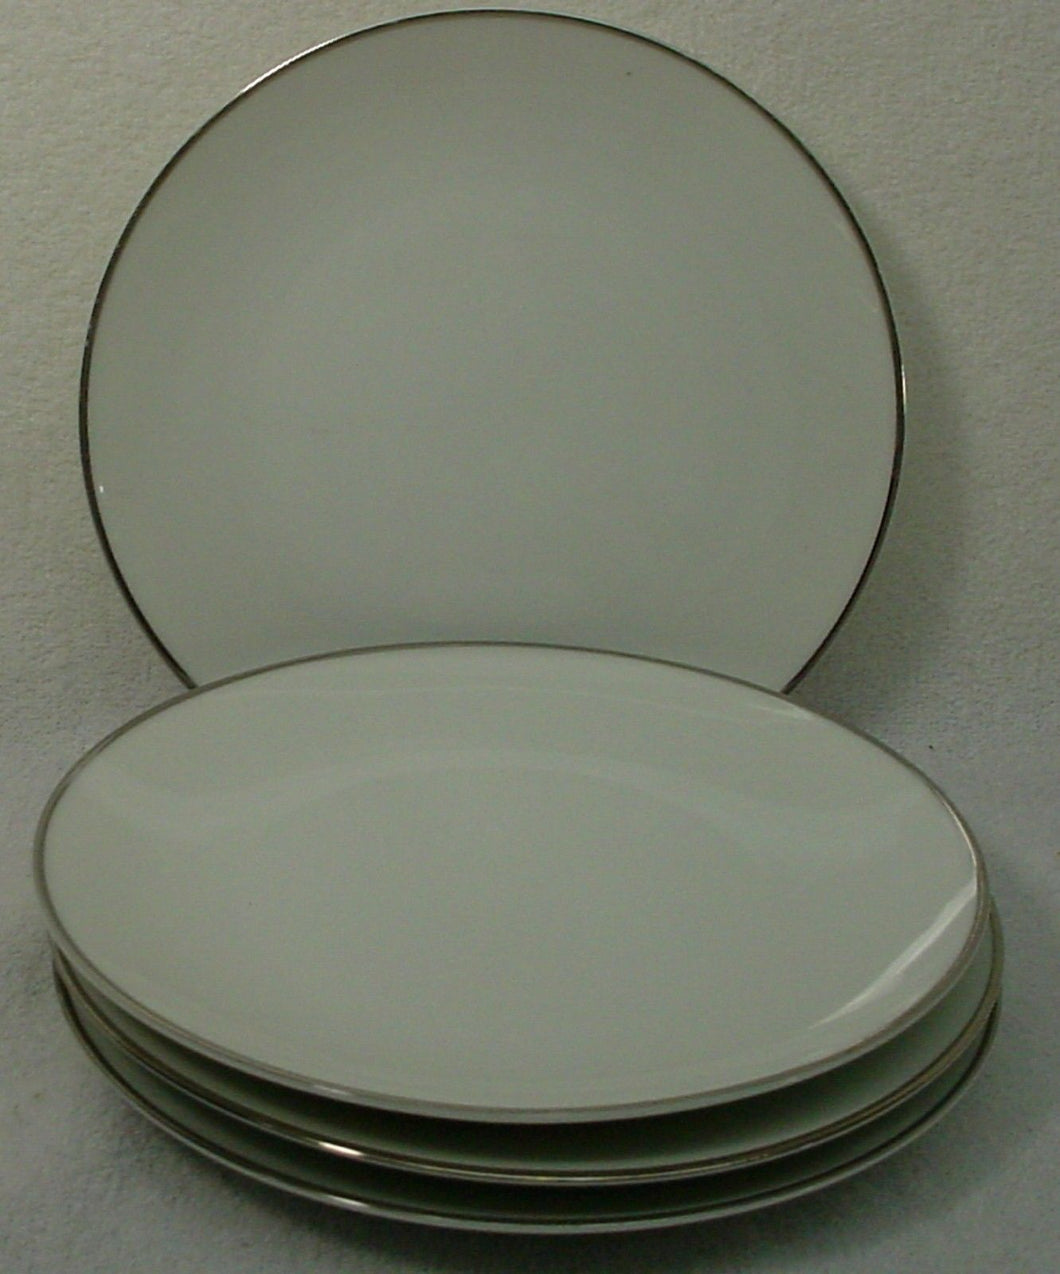 NORITAKE china FREMONT 6127 pattern Bread & Butter Plate -Set of Four (4) 6-3/8